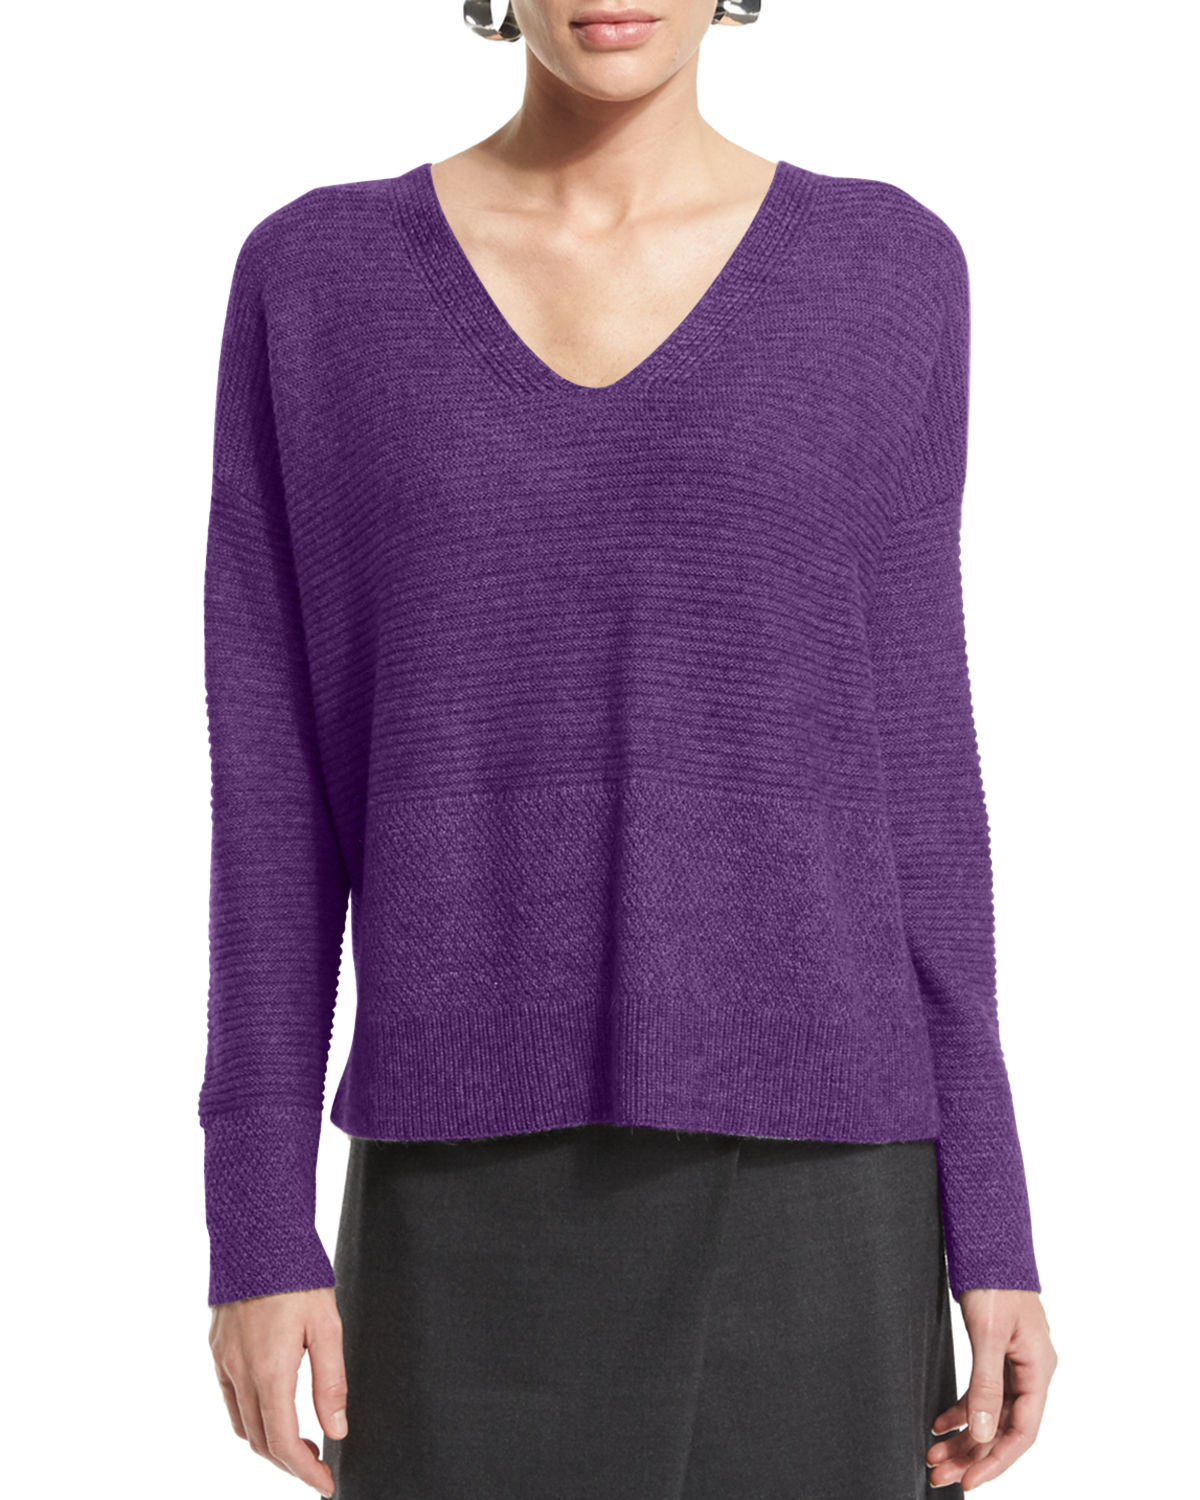 Eileen fisher Long-sleeve V-neck Top in Purple | Lyst